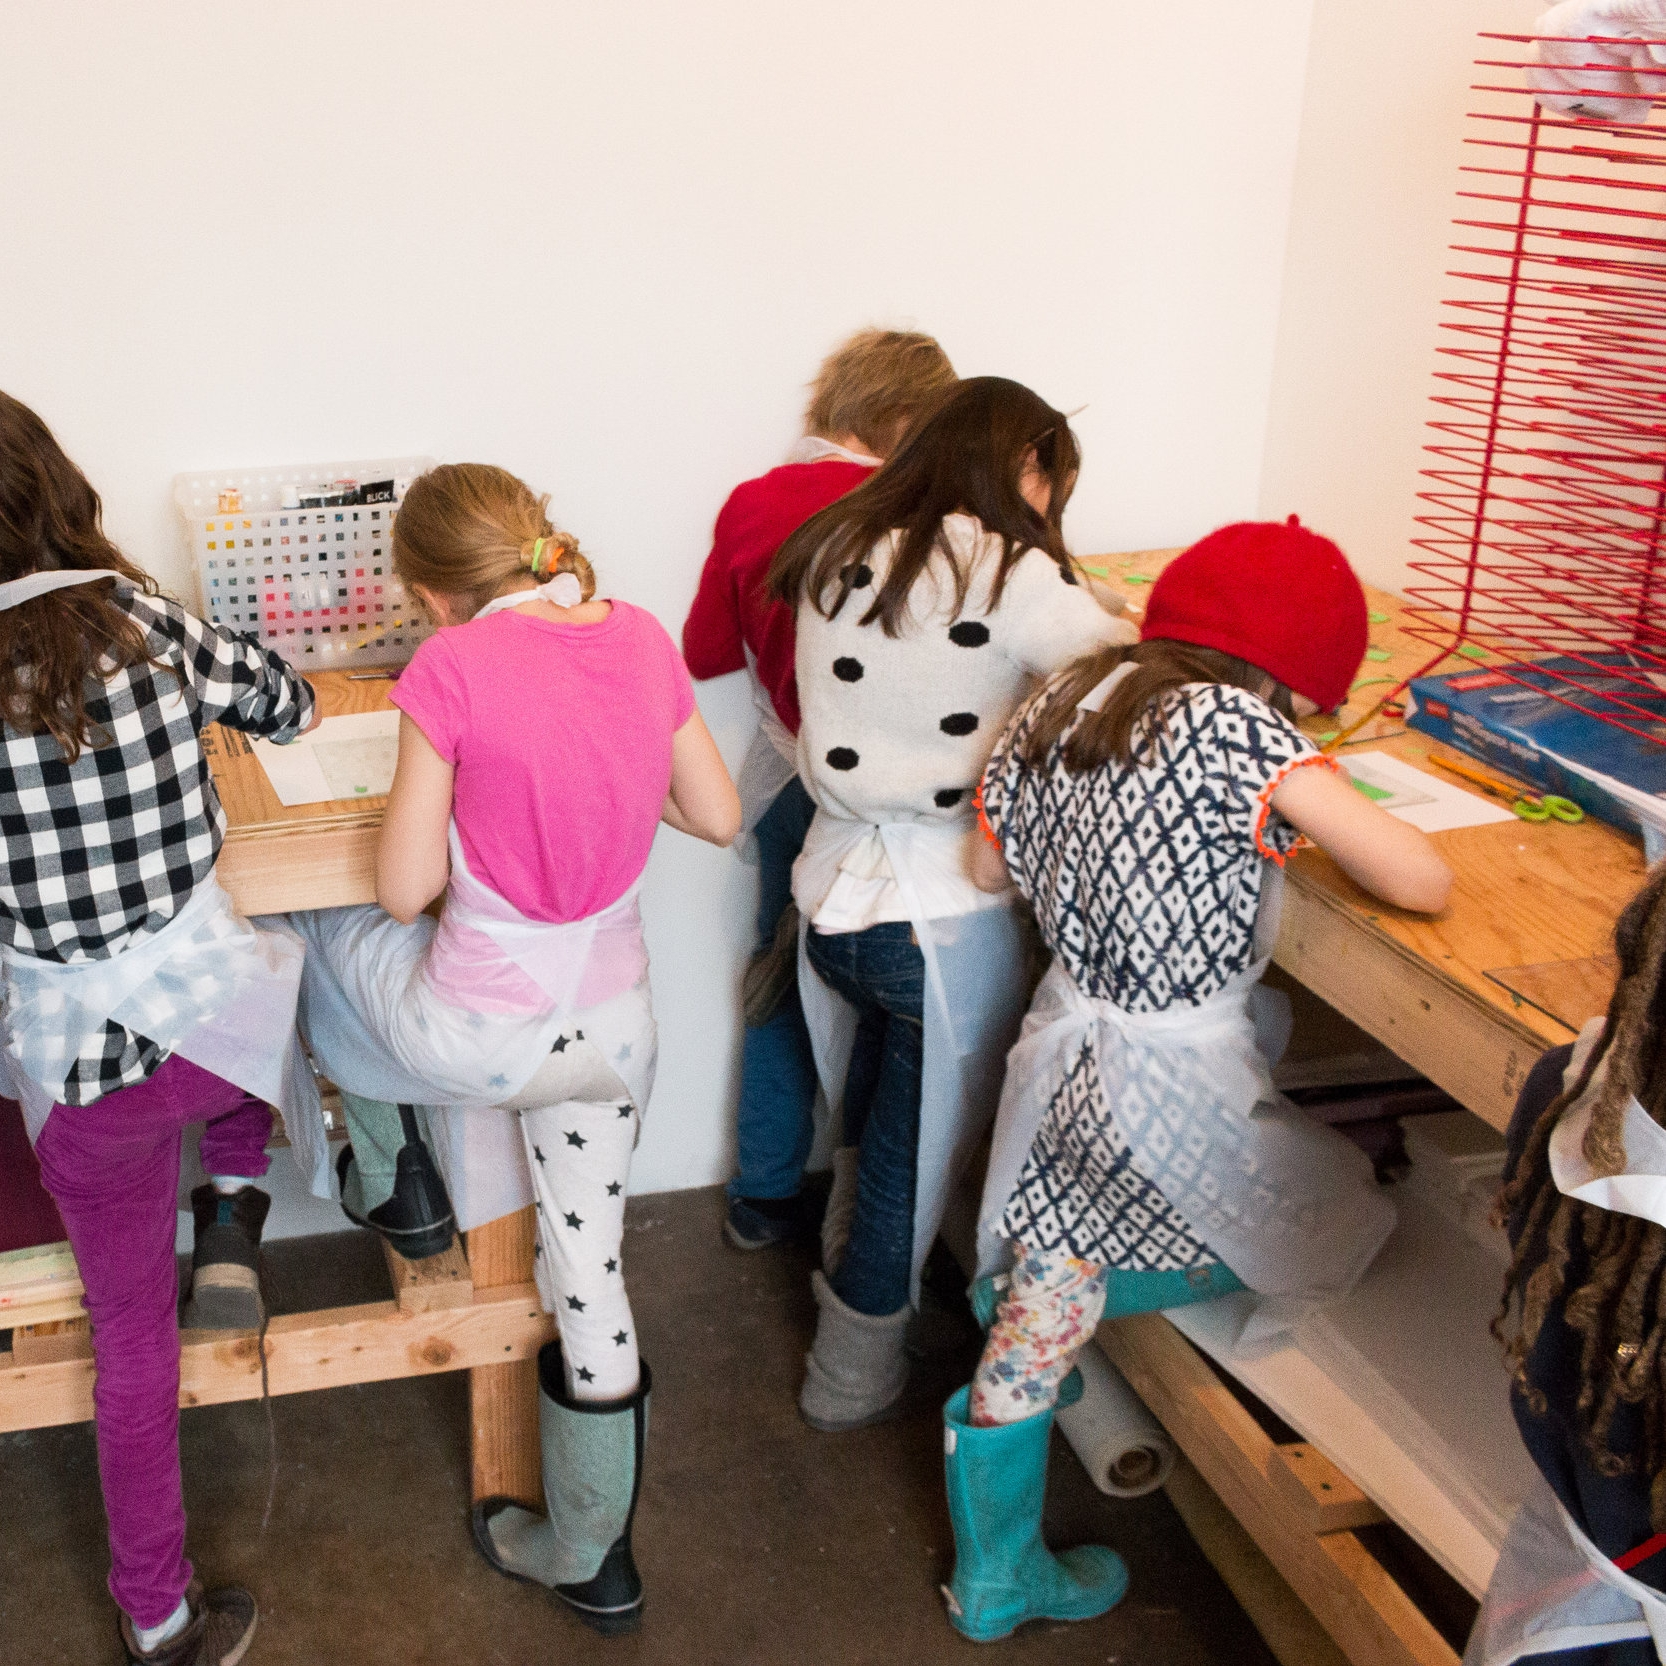 Elementary & middle school groups - Led by a trained artist educator. Following a short tour the exhibition, children learn about techniques such as woodblock, etching, engraving, and silkscreen and engage in kid-friendly printmaking activities.